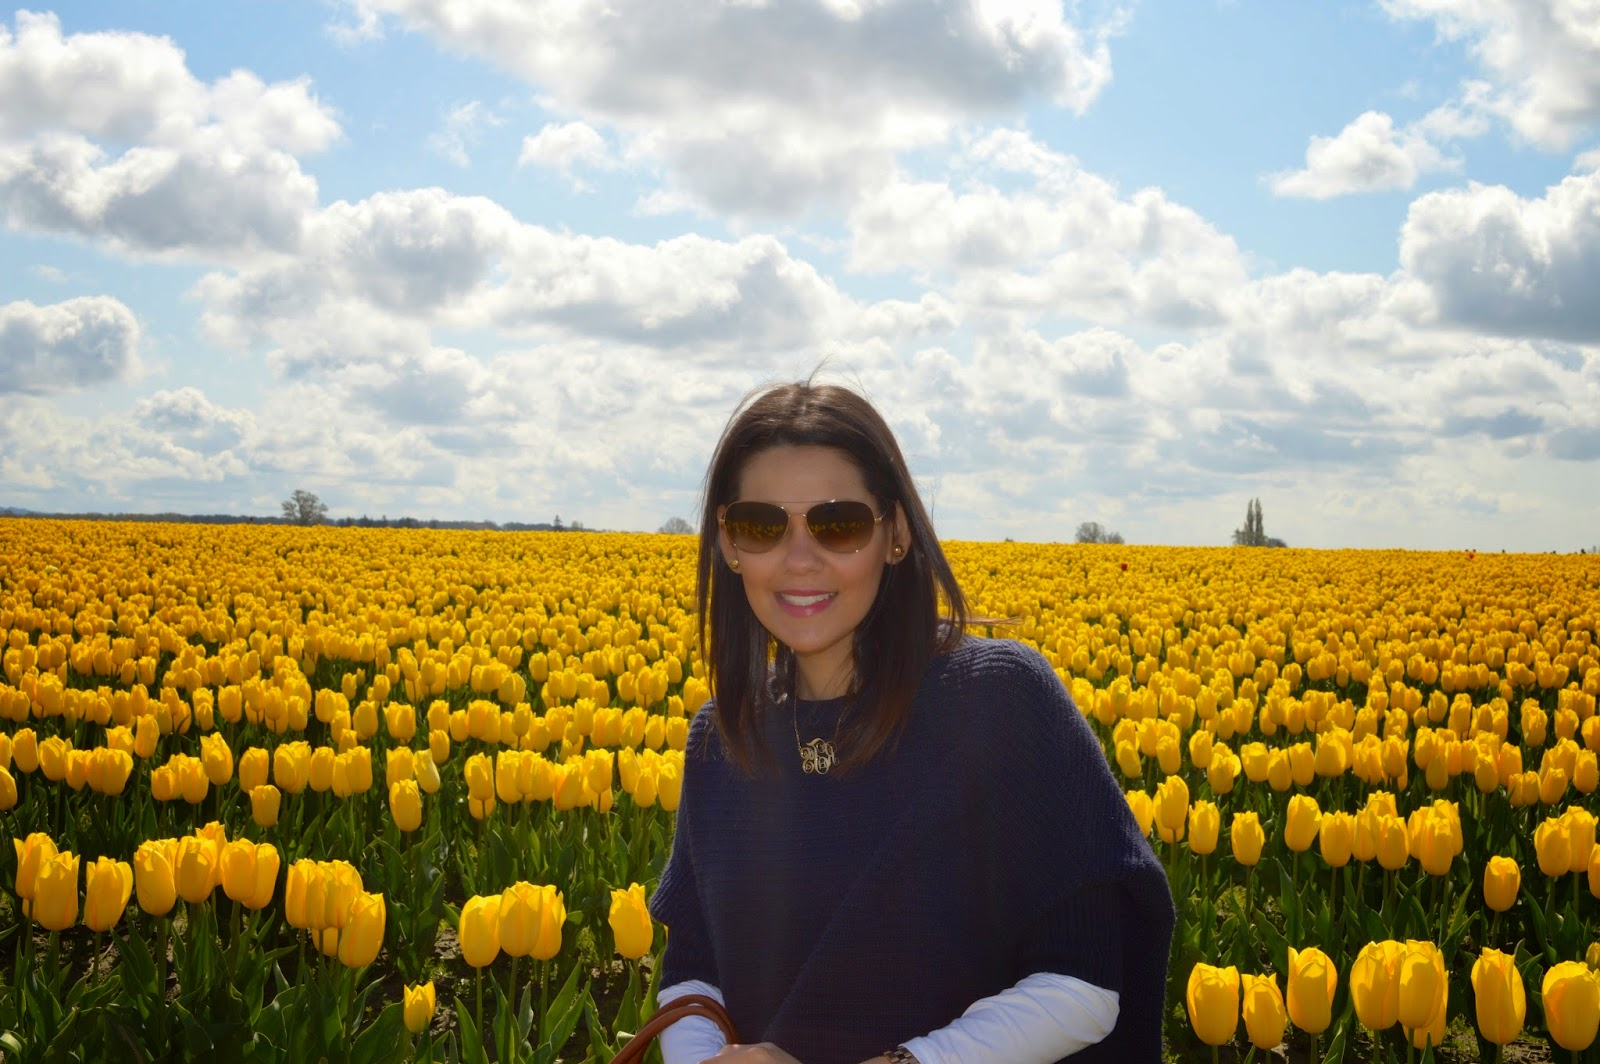 Marifer on a yellow tulip field.